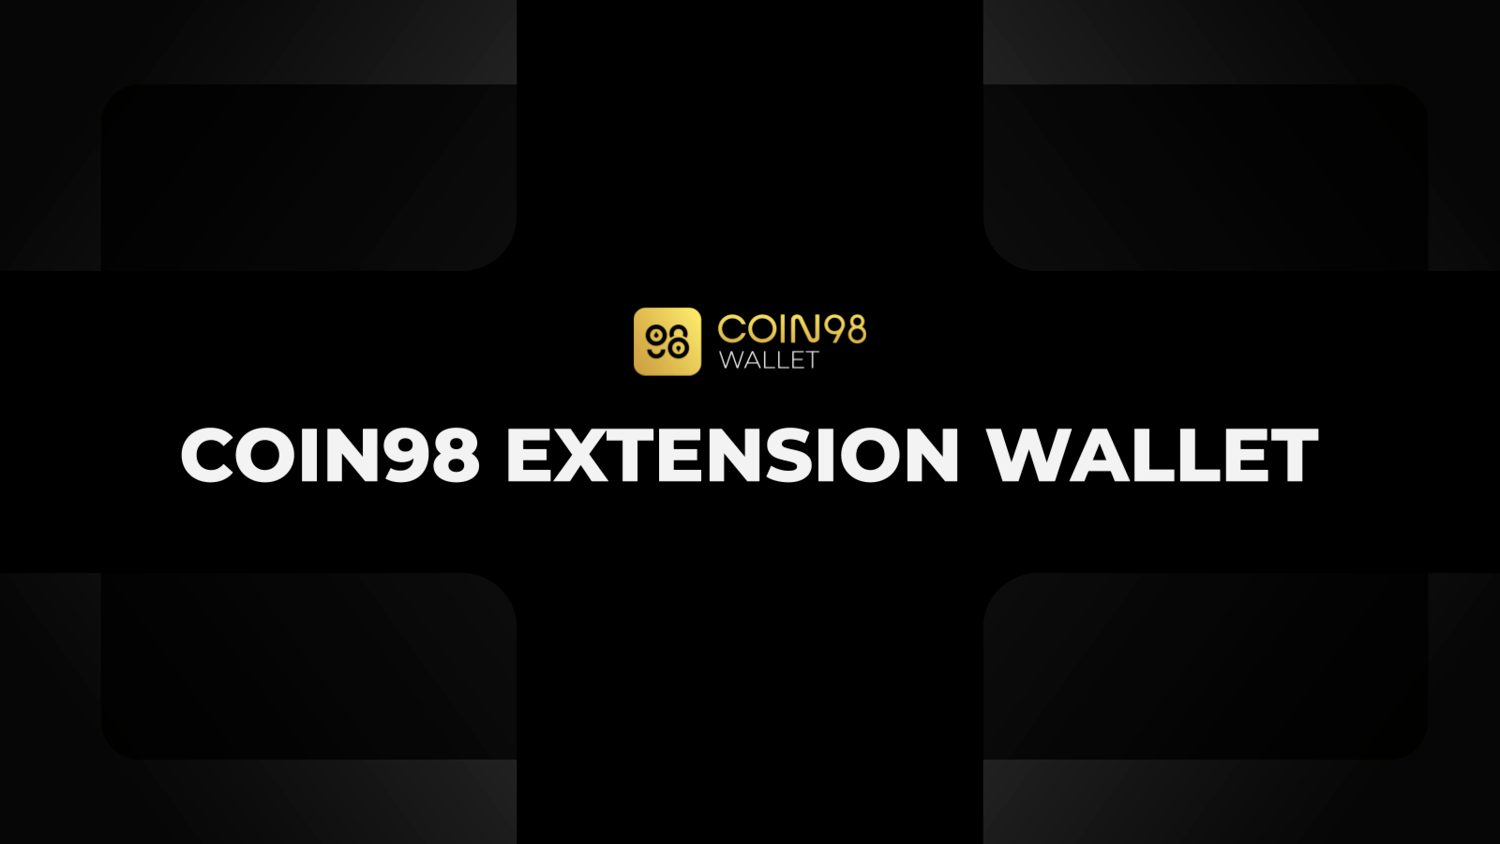 Coin98 Extension wallet